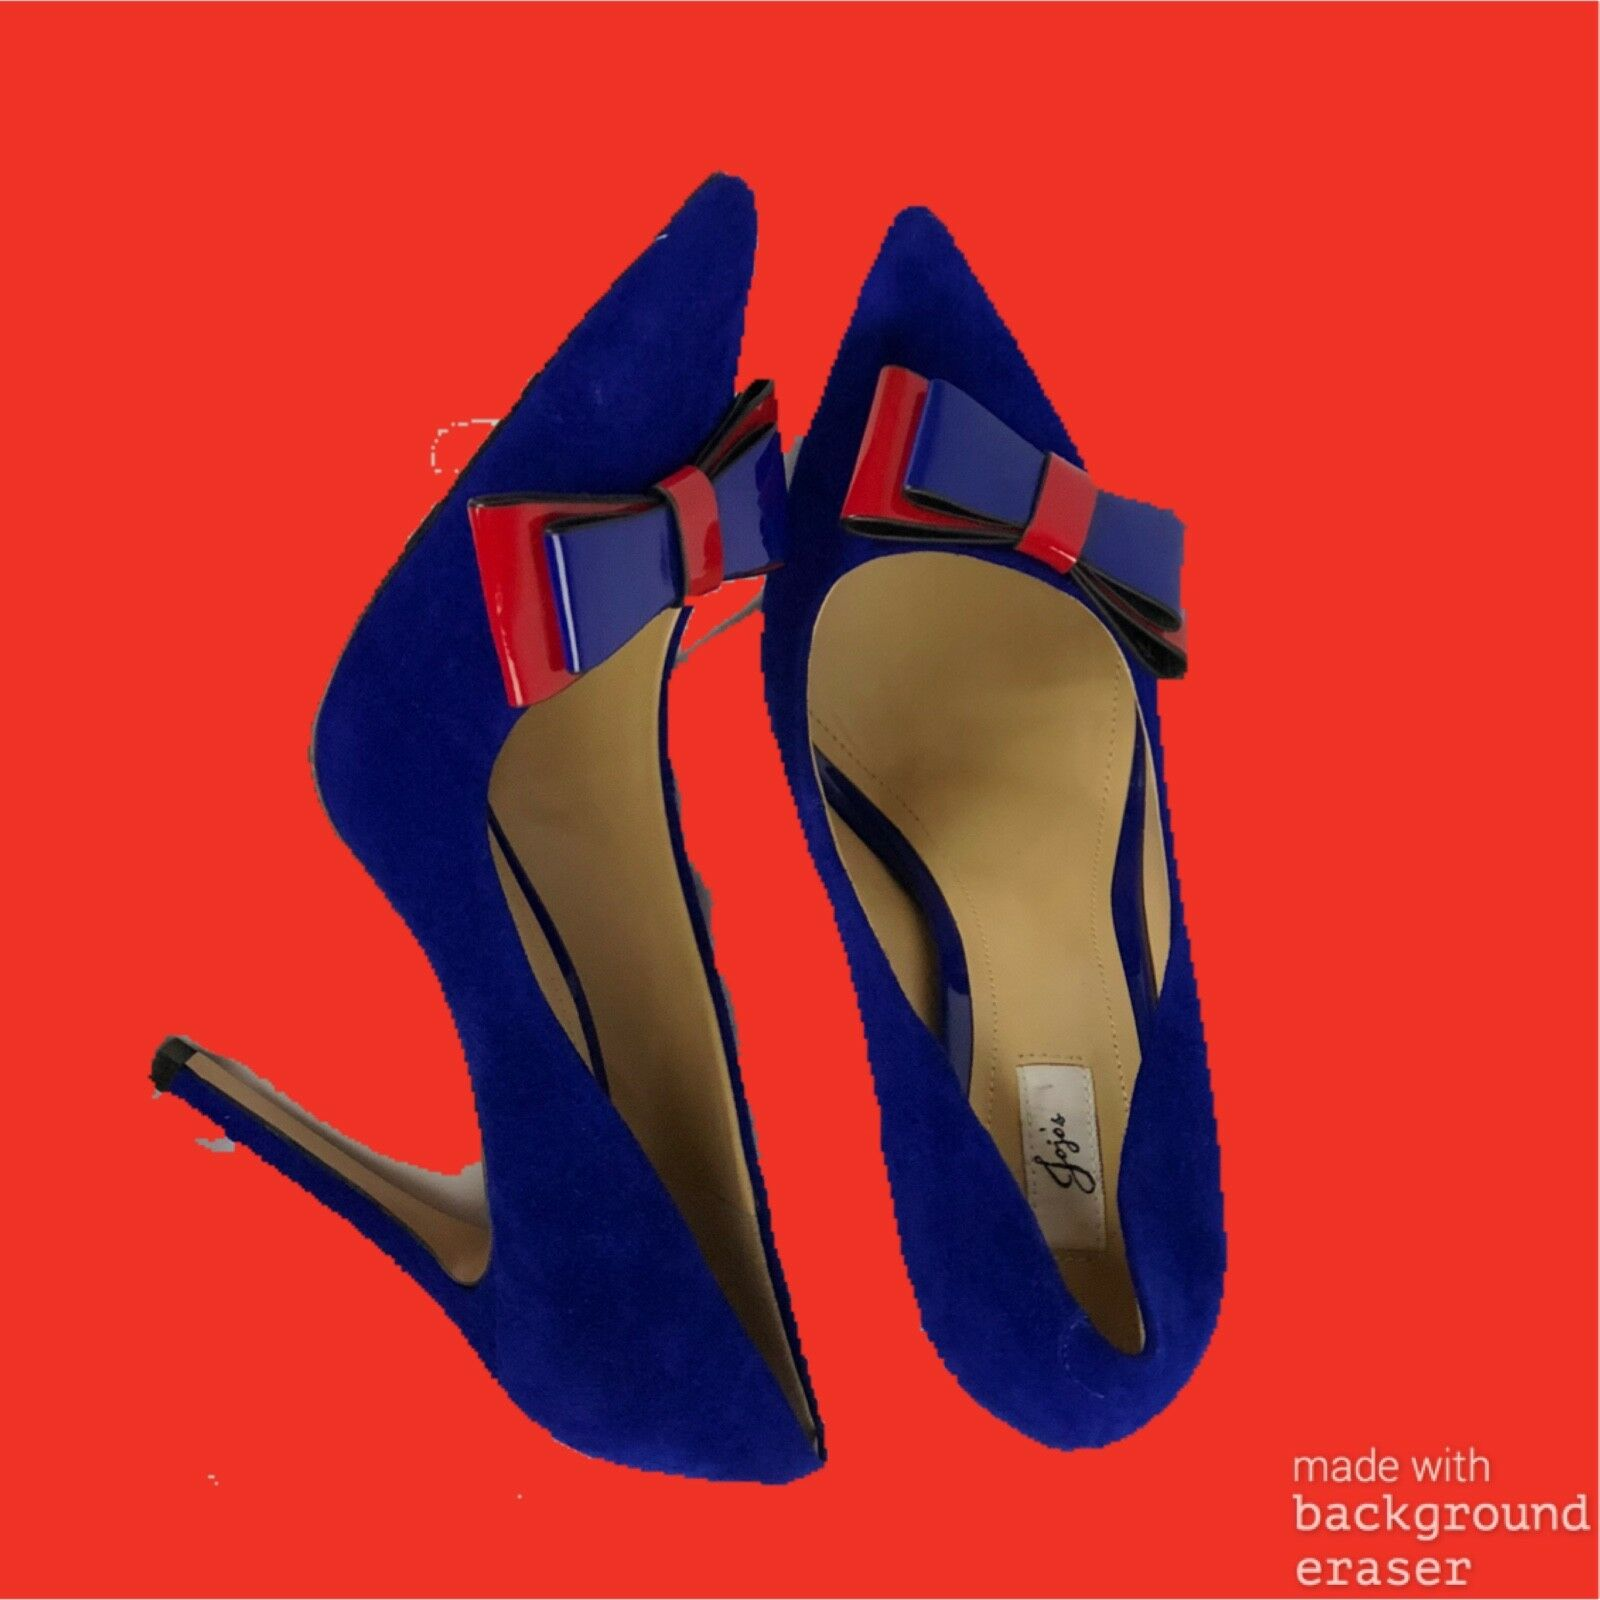 Blue high heeled pumps with red bow details